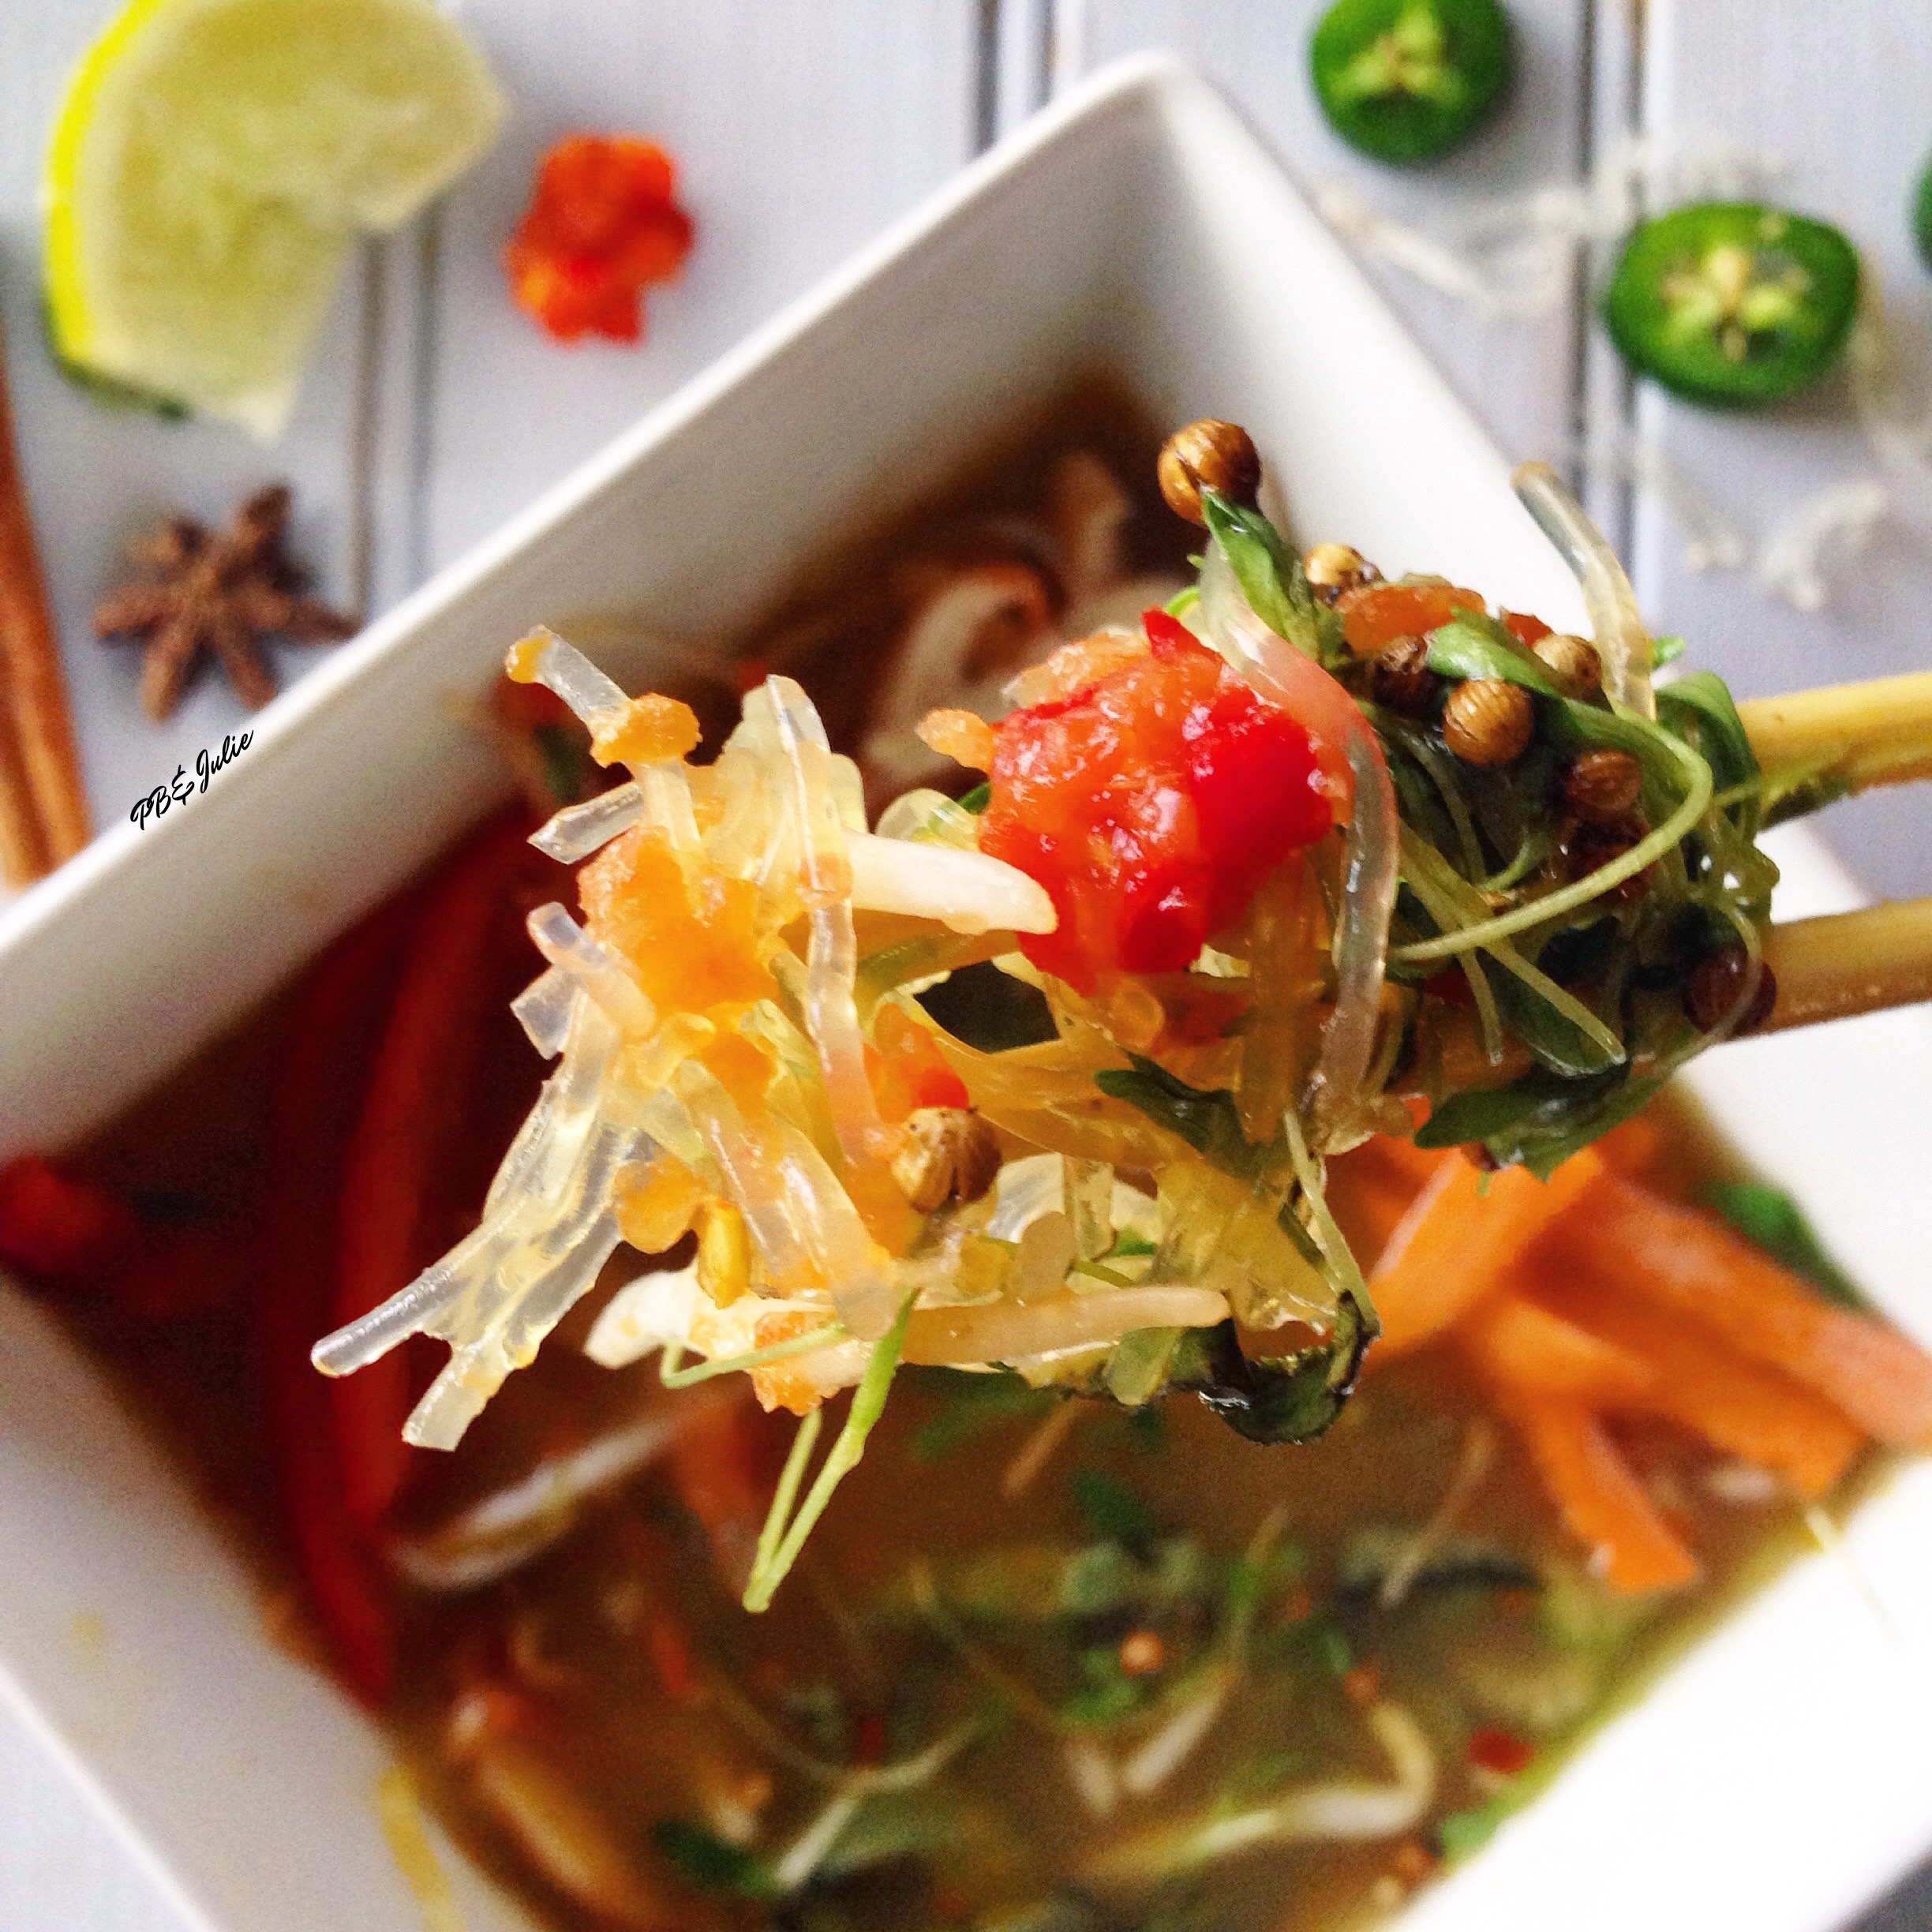 Mineral dense kelp noodles replace carb-heavy rice noodles in this vegan remake of the classic Vietnamese Pho soup for a plant-based, clean eats meal your whole family will love. Perfect for cozying up with on these cold winter days!